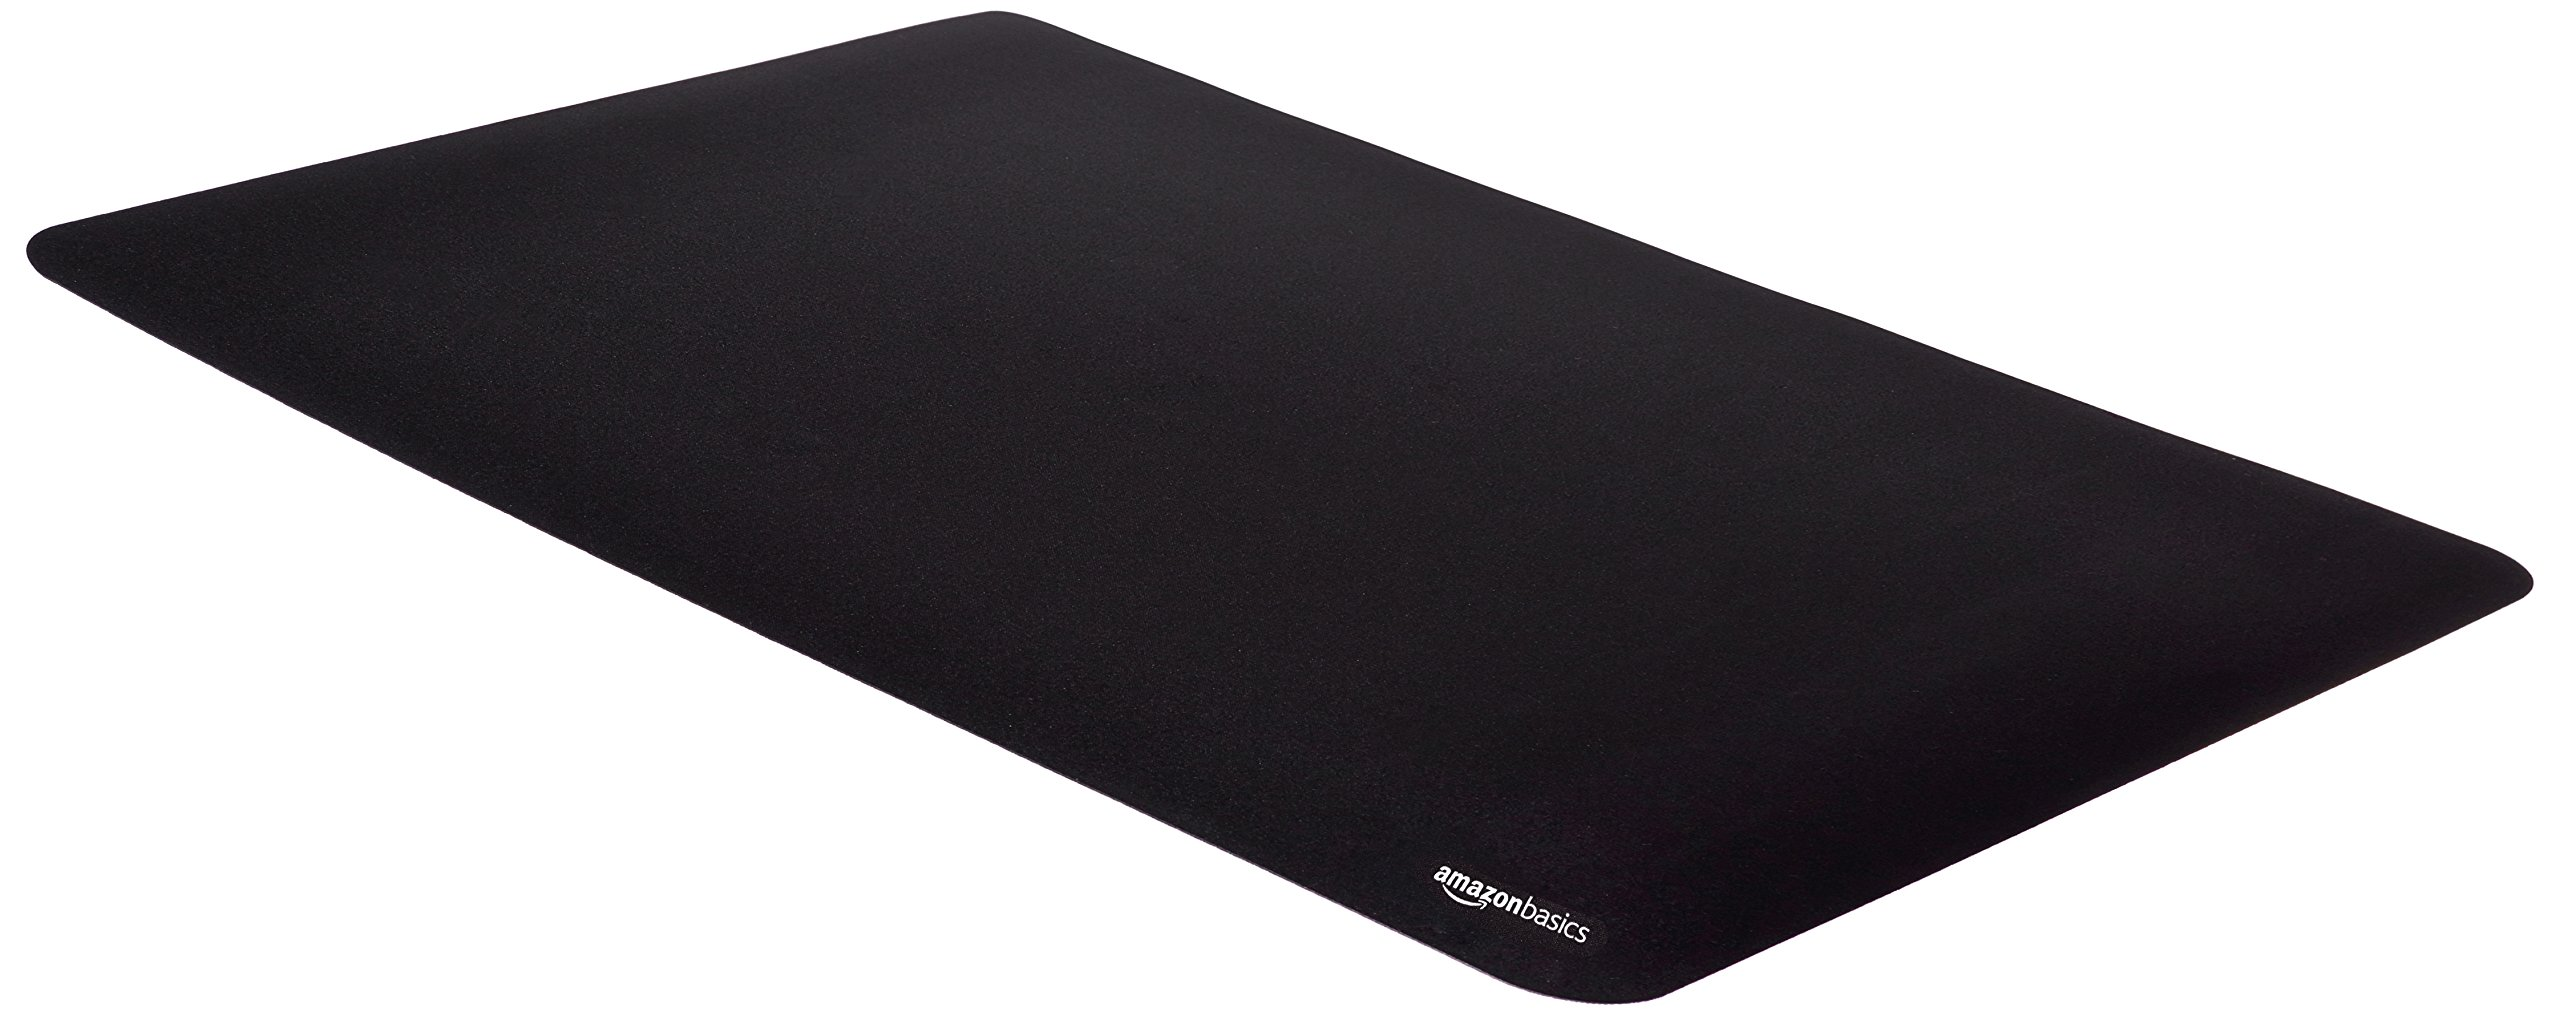 AmazonBasics Extended Gaming Mouse Pad